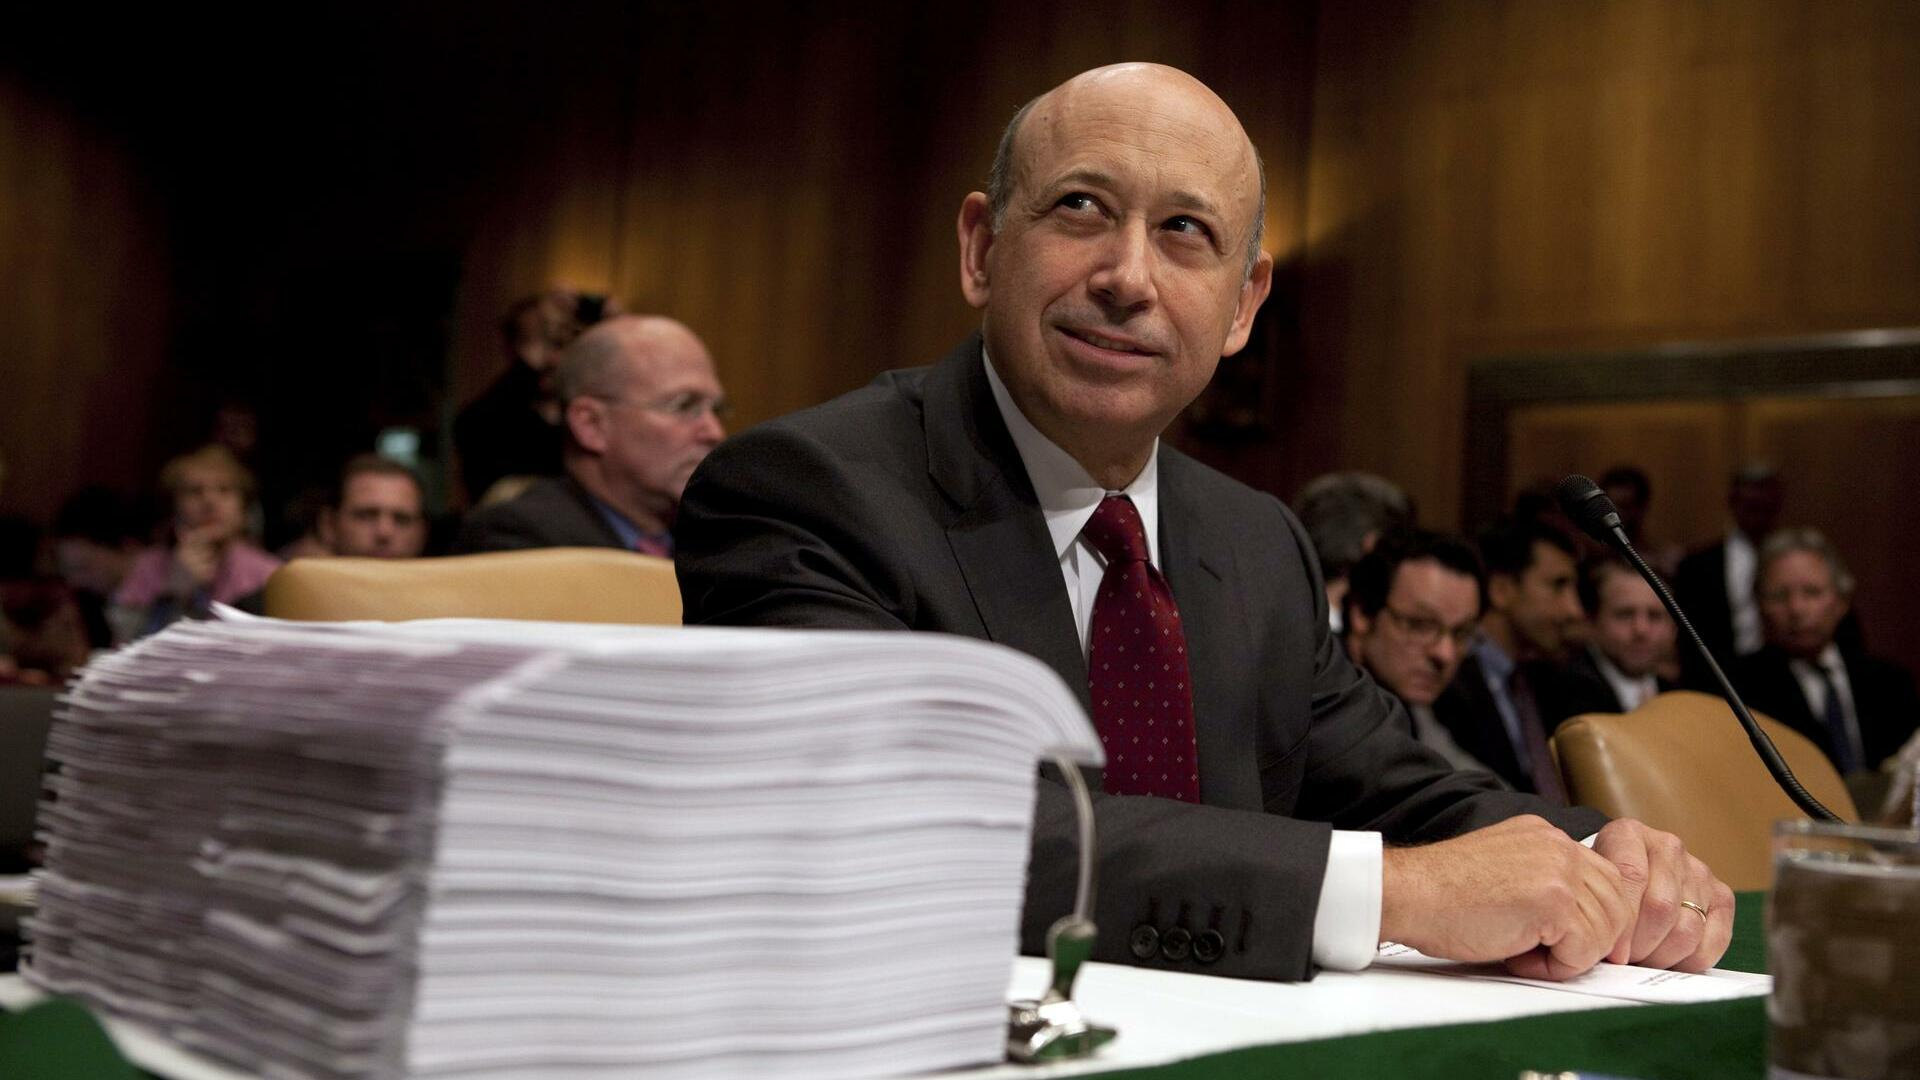 Goldman Sachs chairman and chief executive officer Lloyd Blankfein pauses before he testifies before the Senate Subcommittee on Investigations hearing Quelle: AP